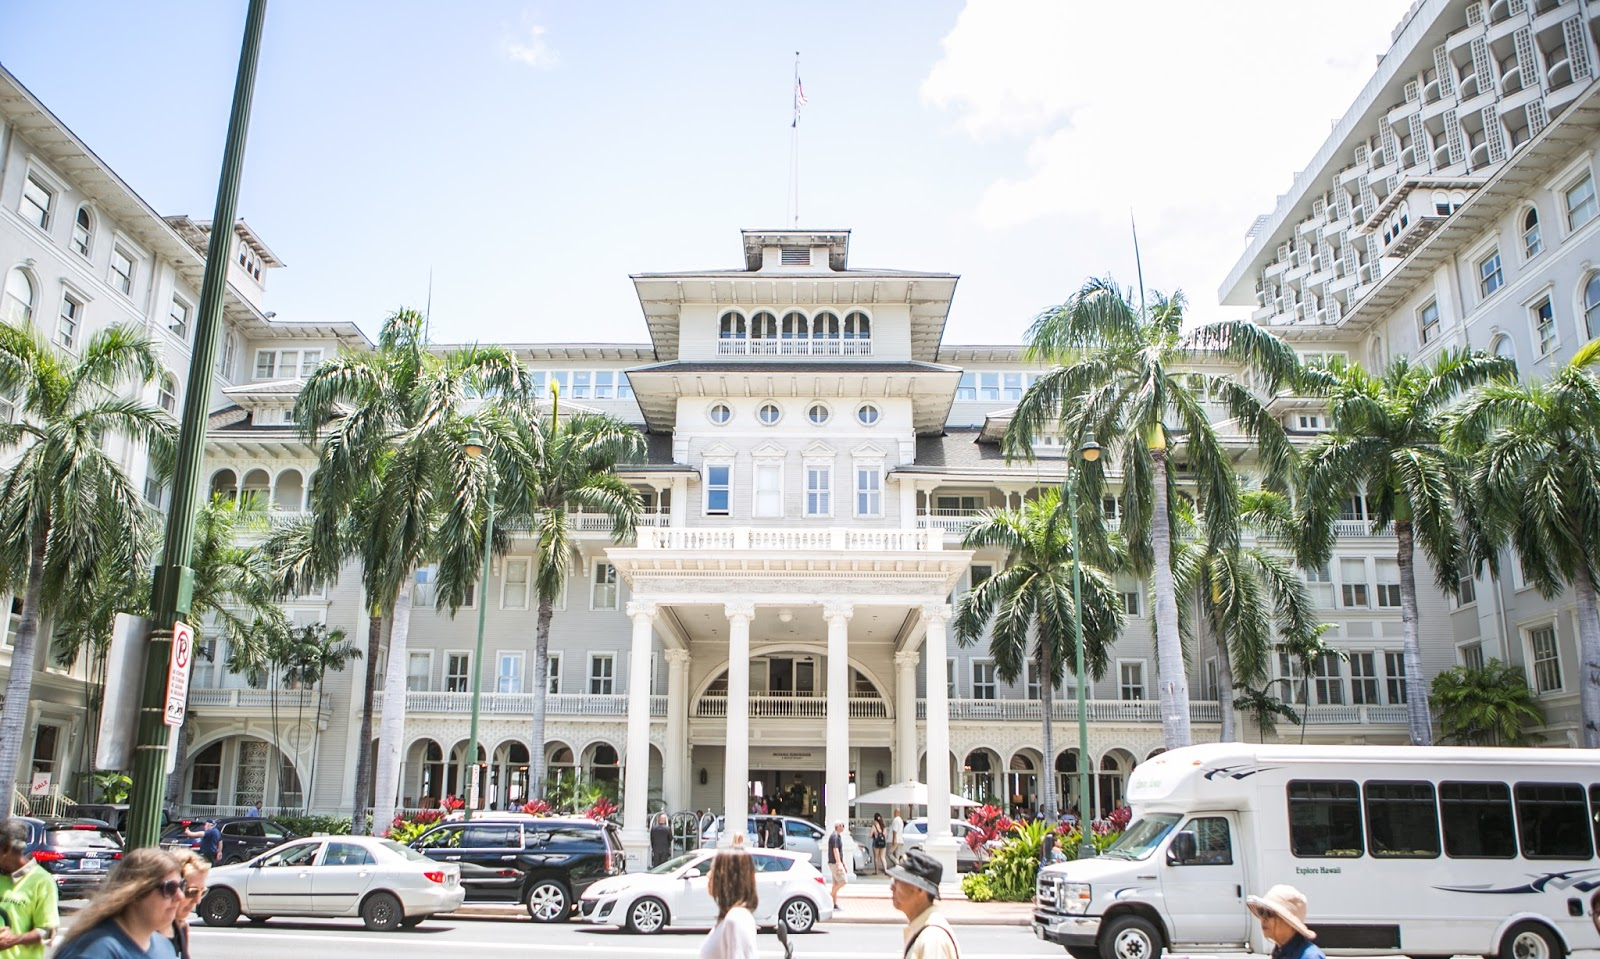 Moana Surfrider Hawaii Waikiki Luxury Resort Review Veranda